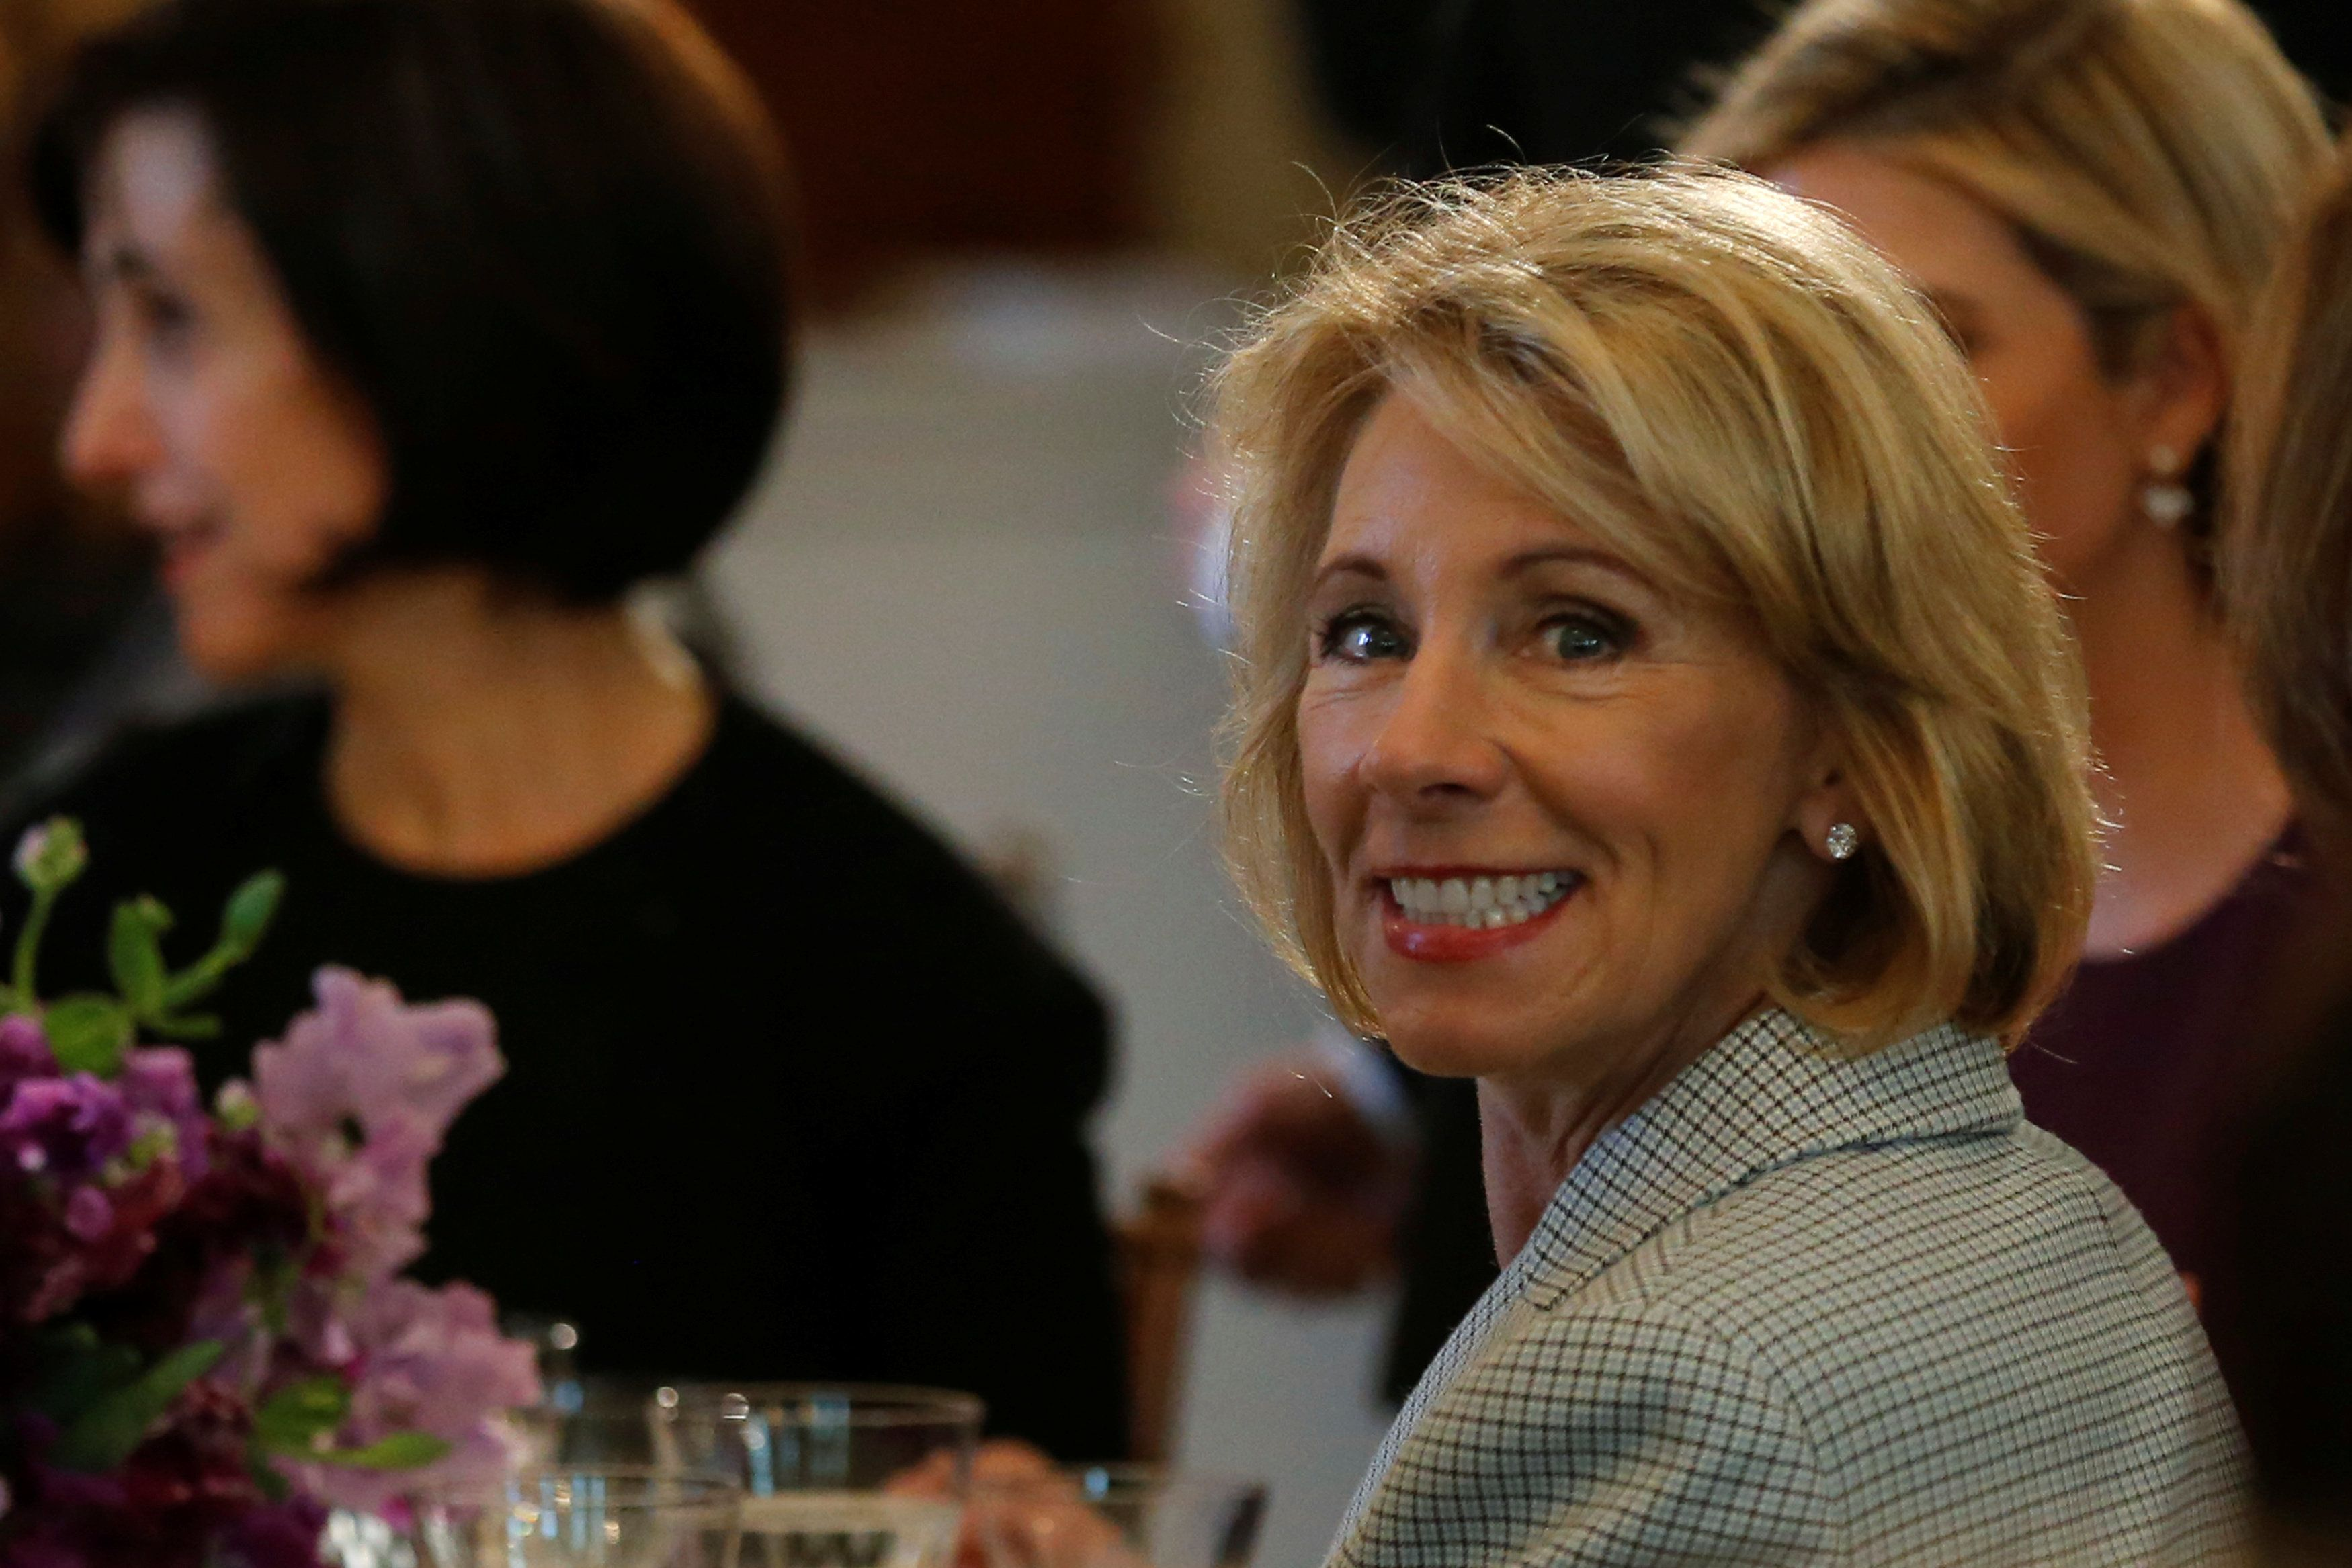 Secretary of Education Betsy DeVos attends first lady Melania Trump's International Women's Day luncheon at the White House o